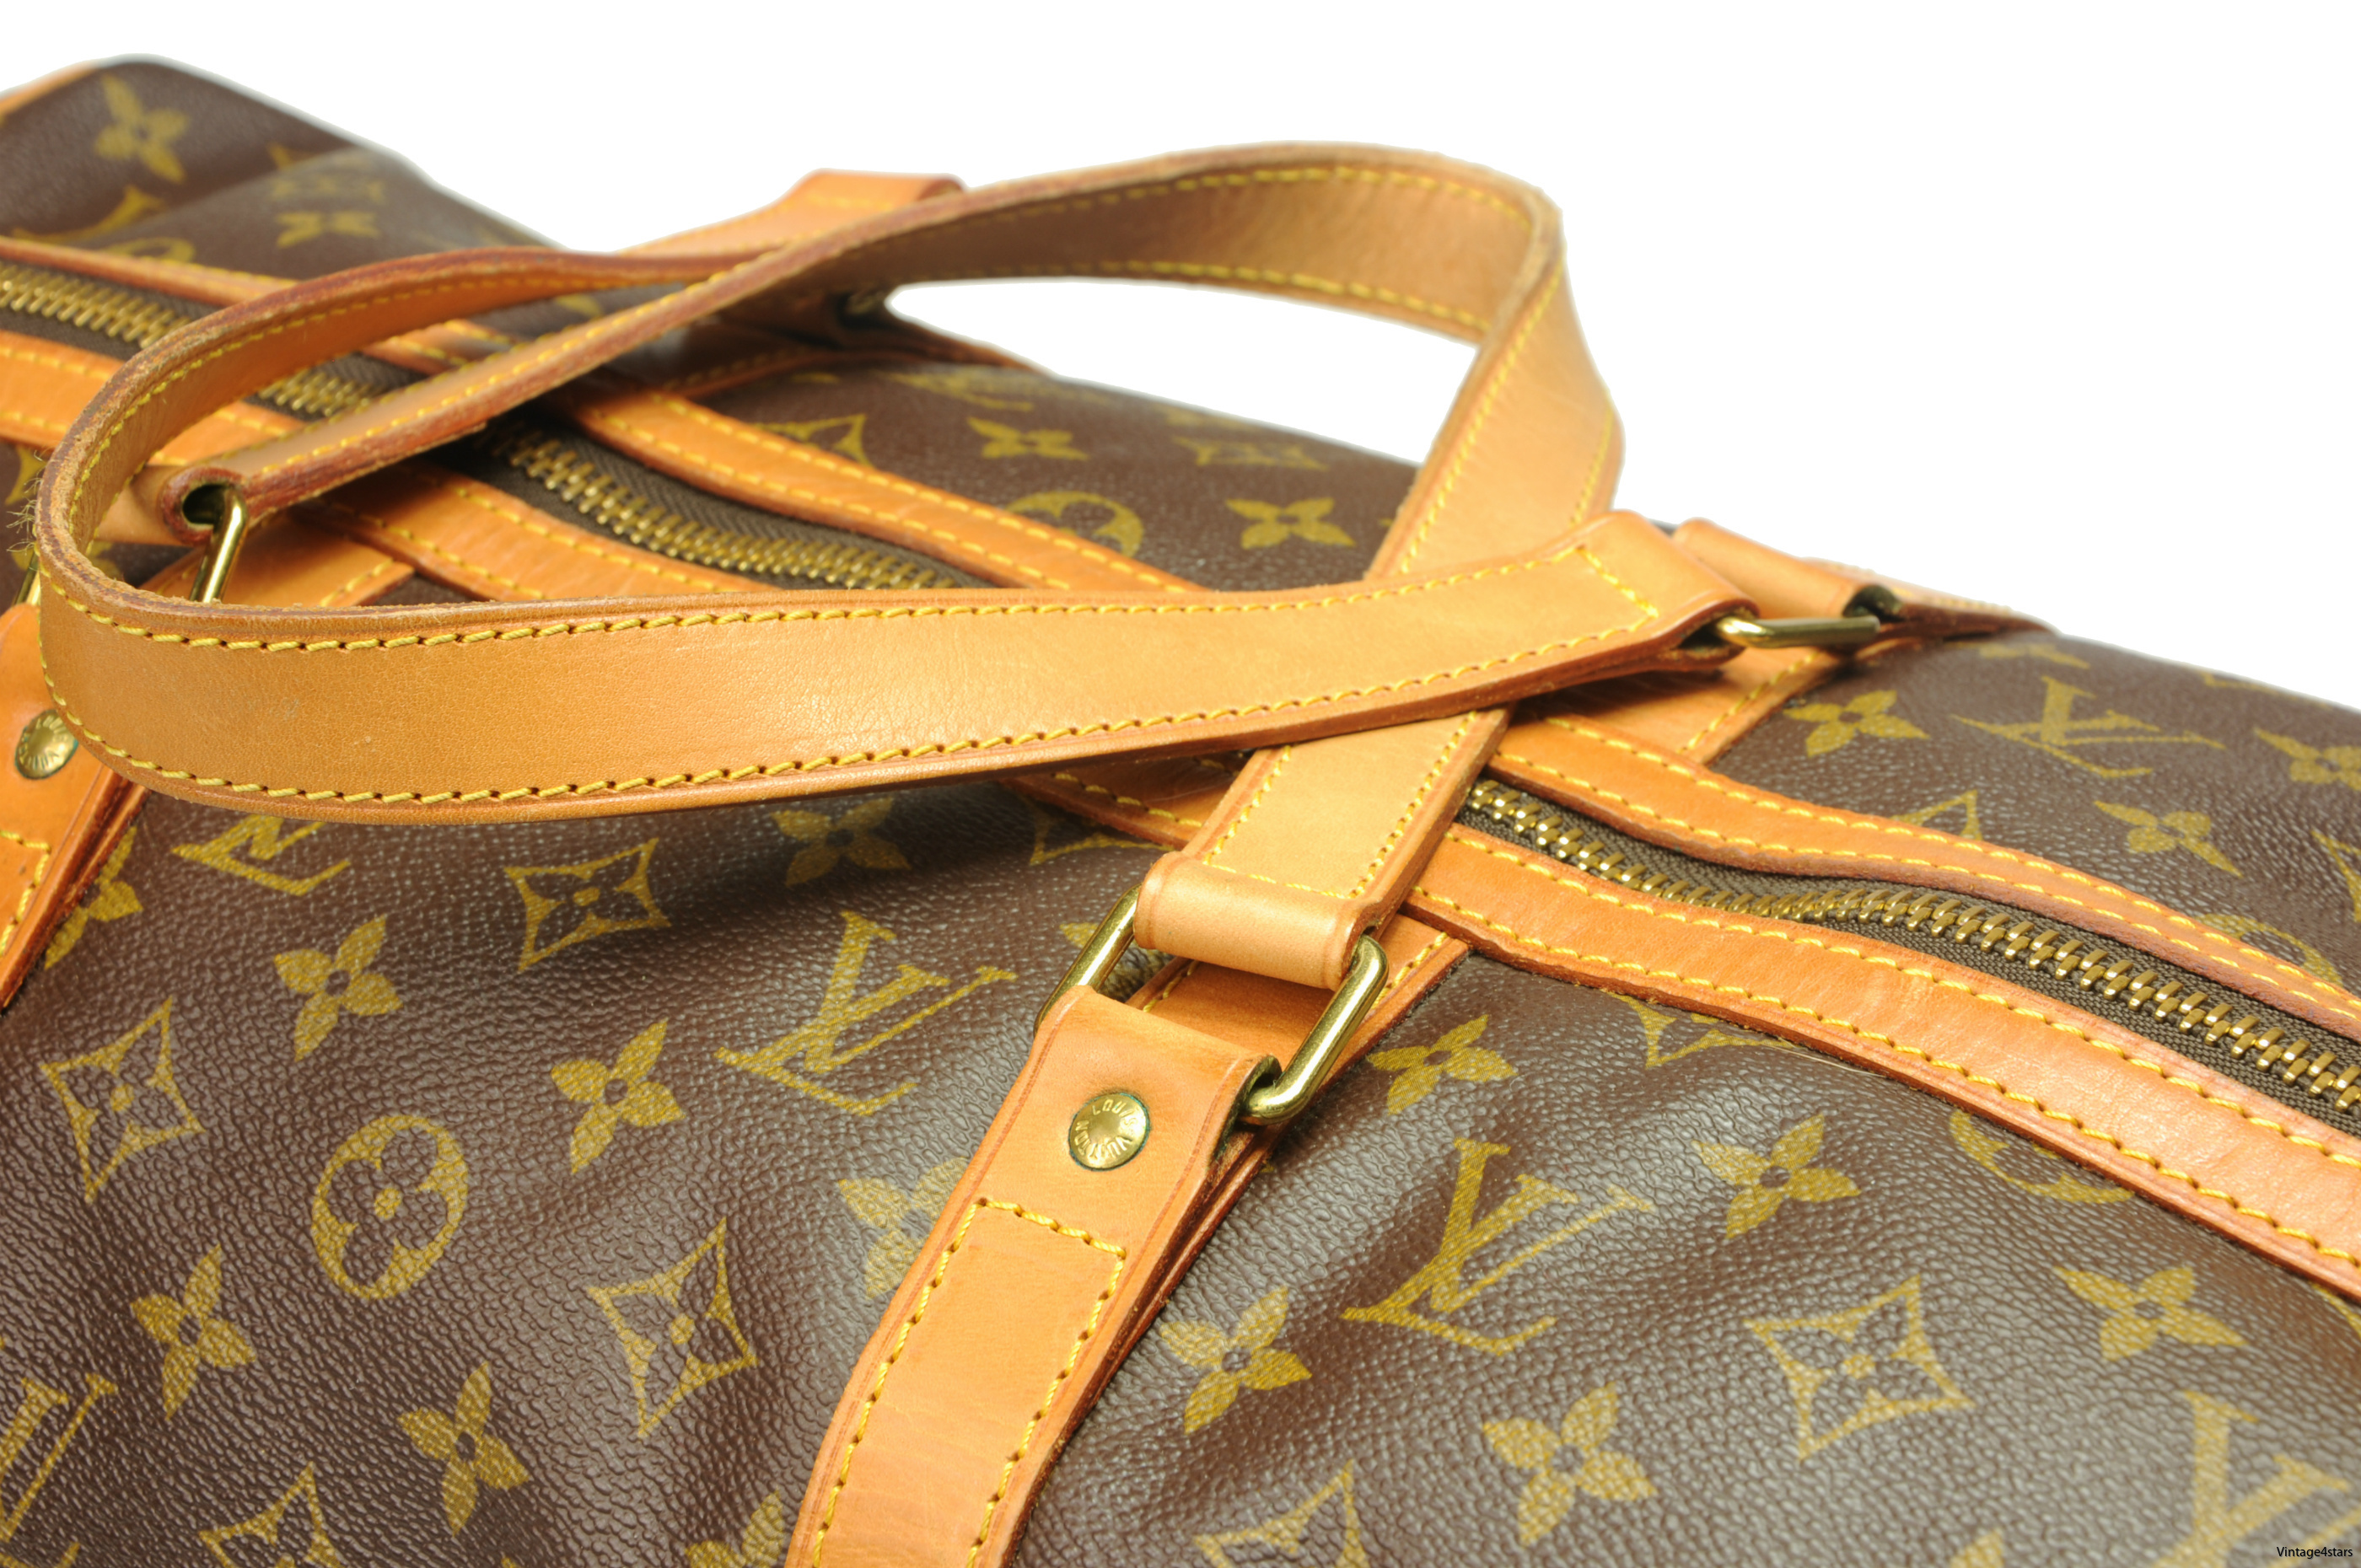 Louis Vuitton Sac Souple 45 7a